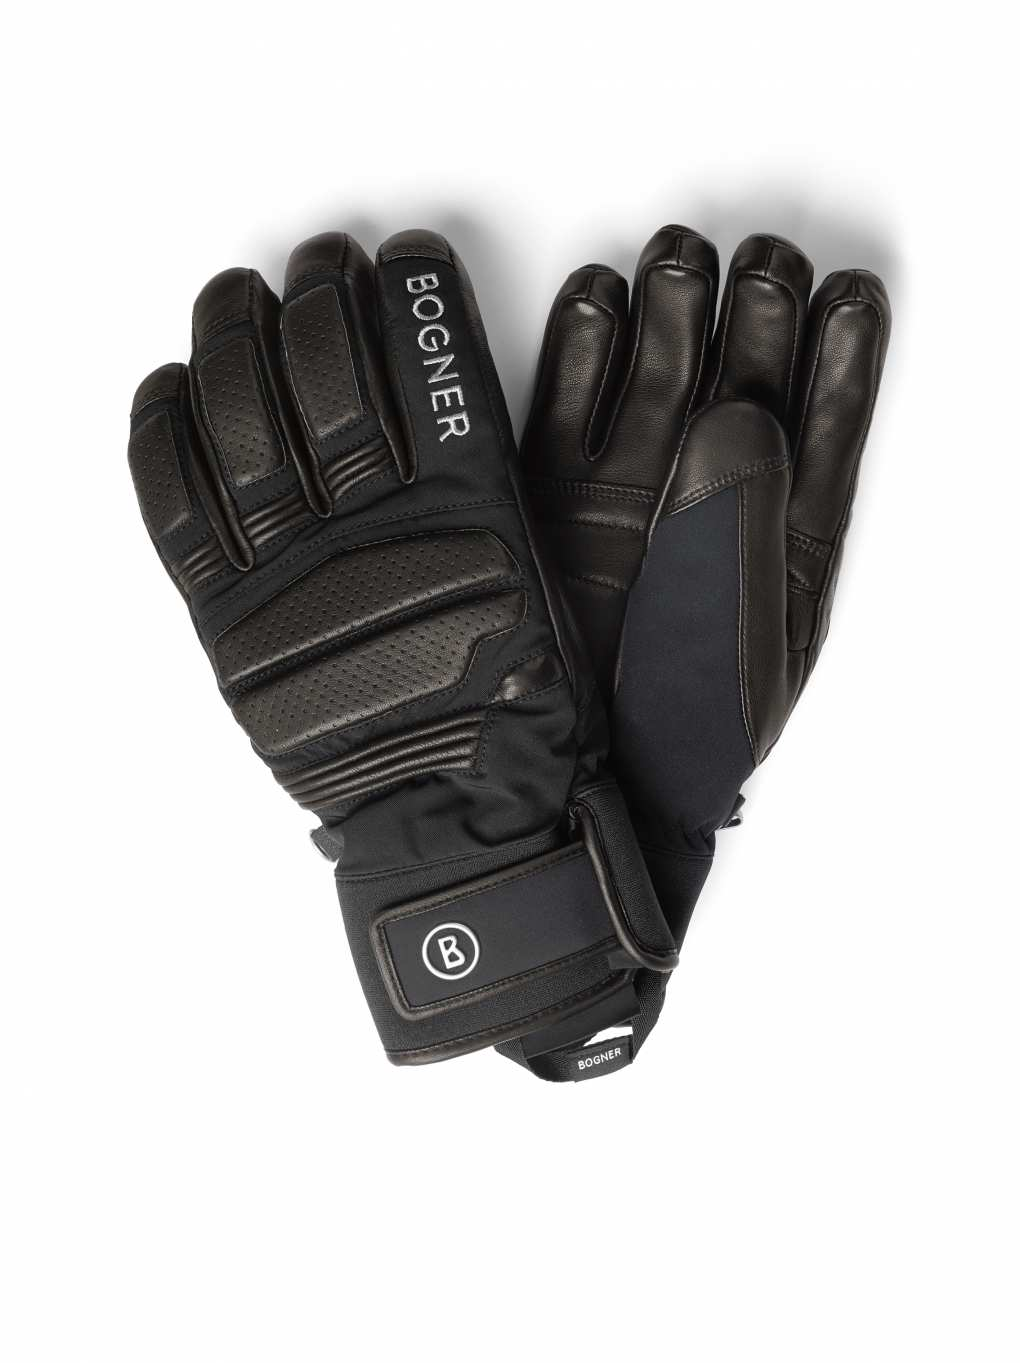 Перчатки AGON Bogner Gloves